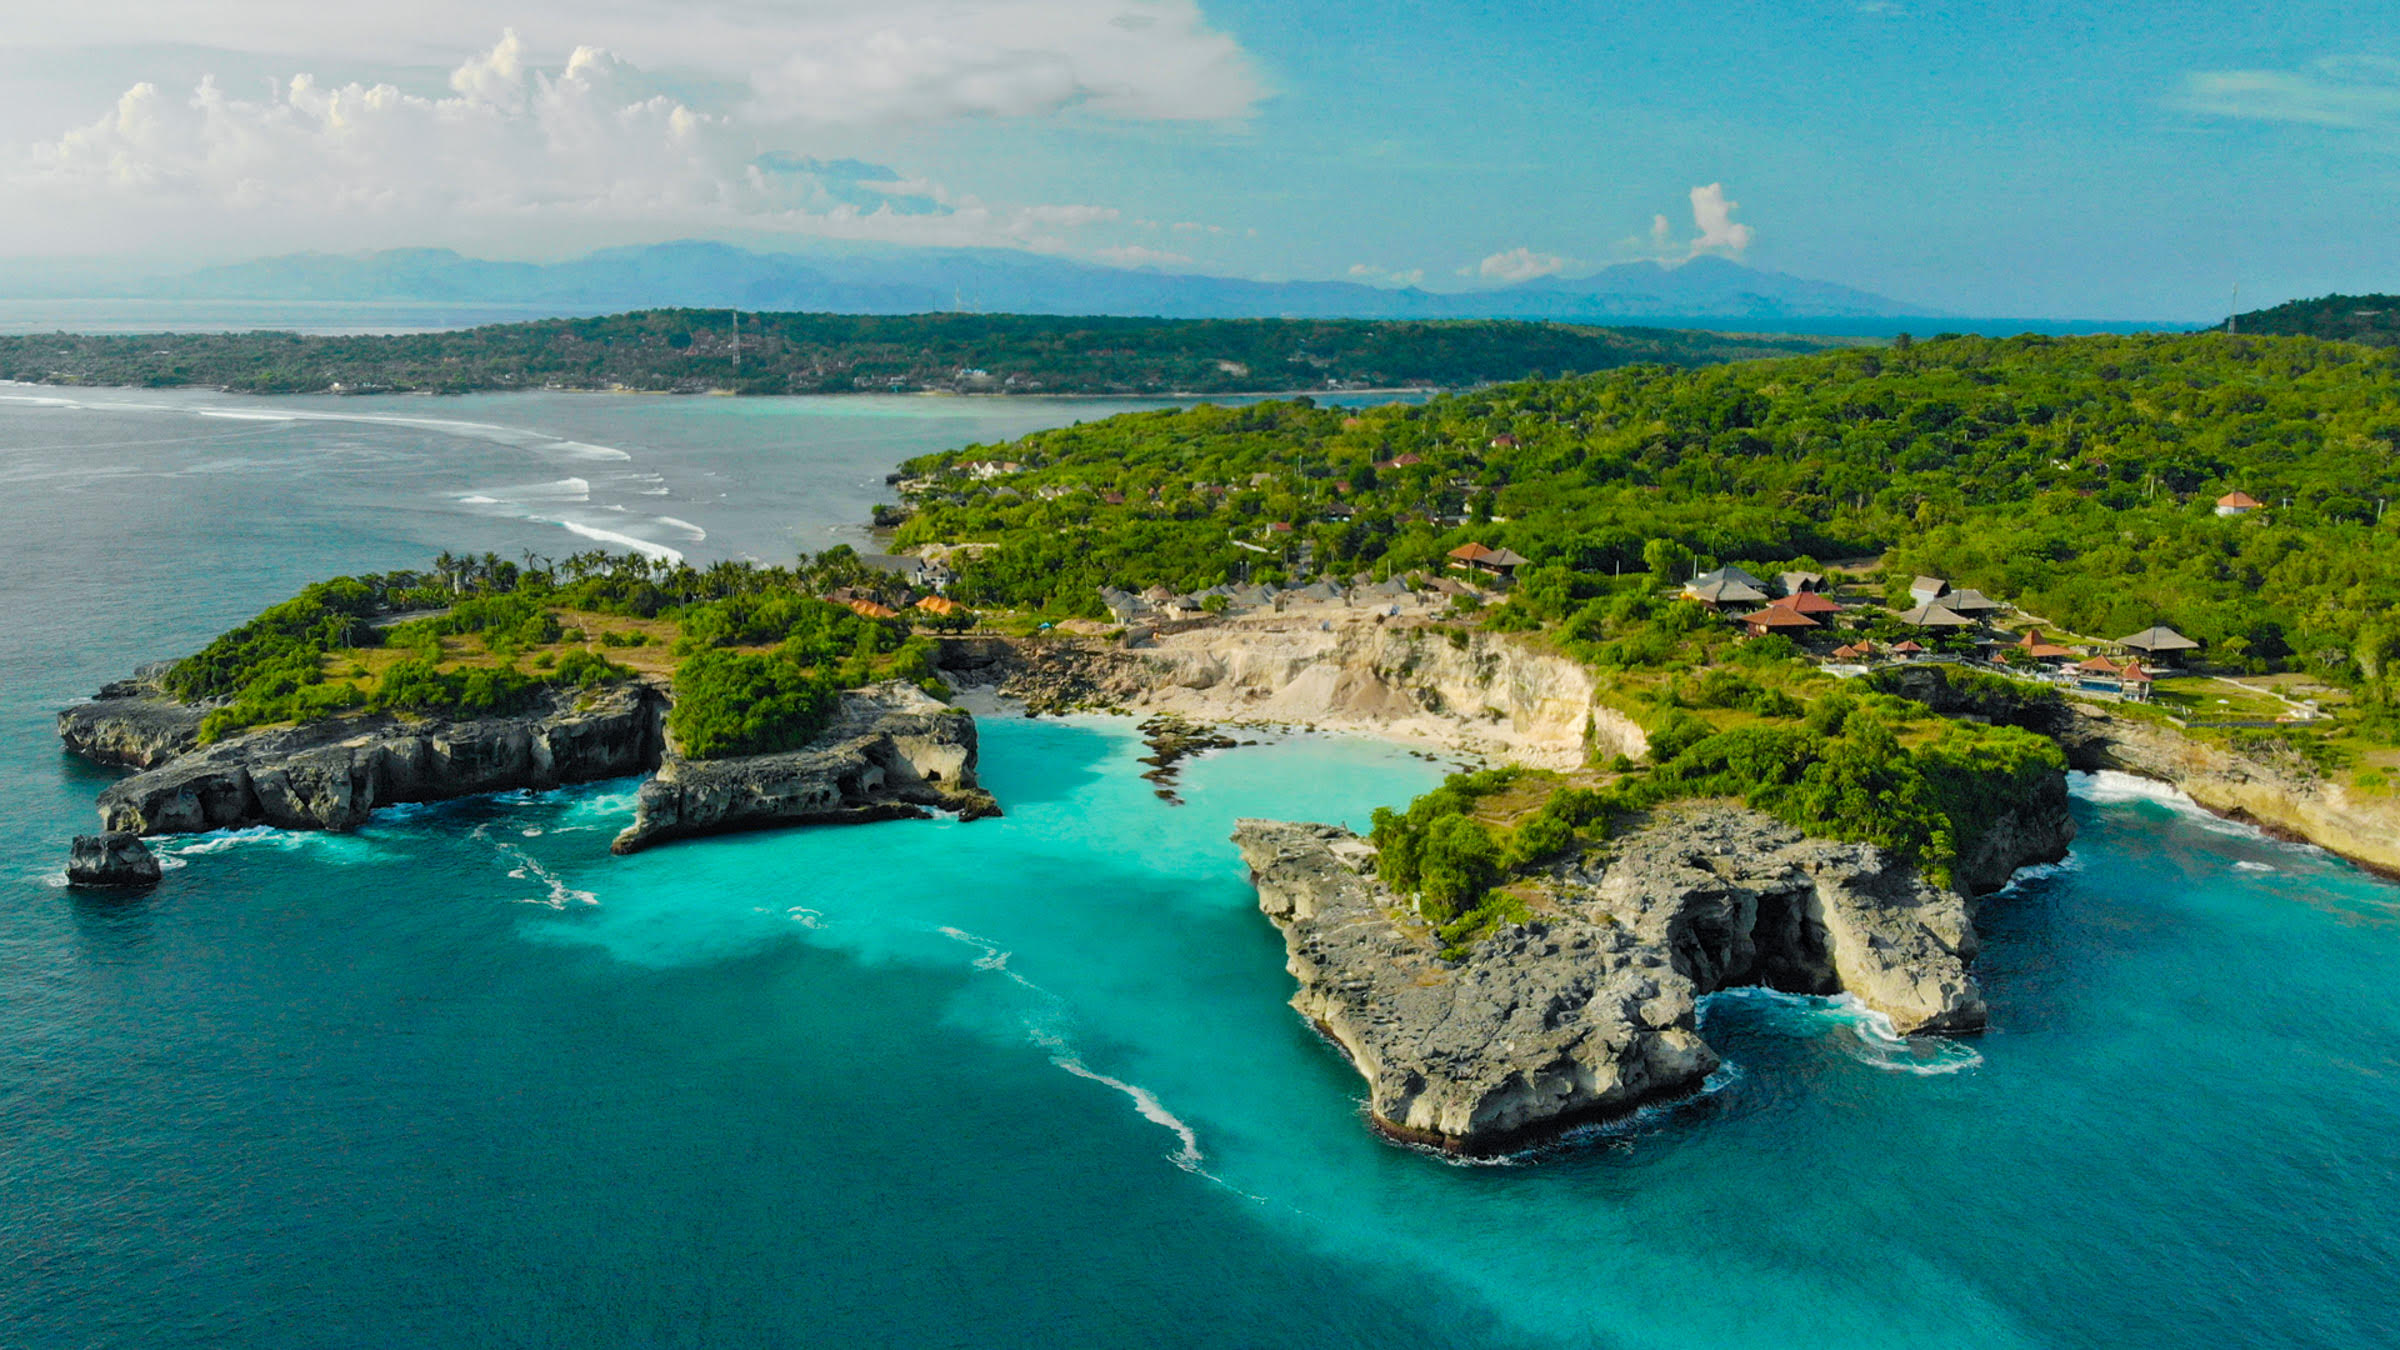 The marine protected area surrounding the nusa islands allows divers to experience some of the best diving in the world